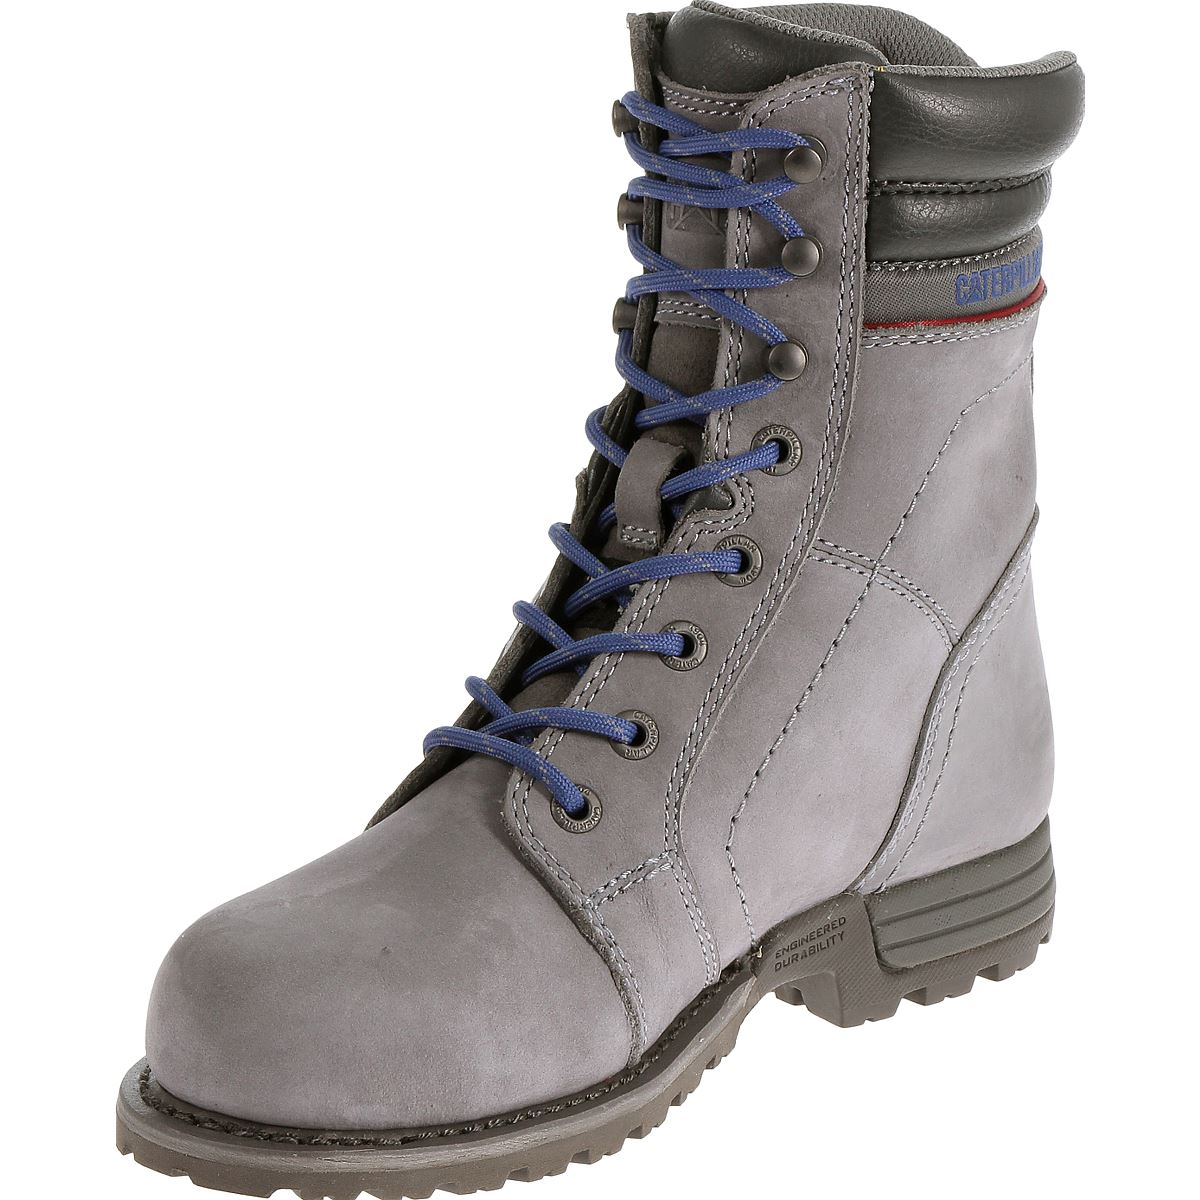 Fantastic Women Work Boots Outfit With Lastest Trend | Sobatapk.com